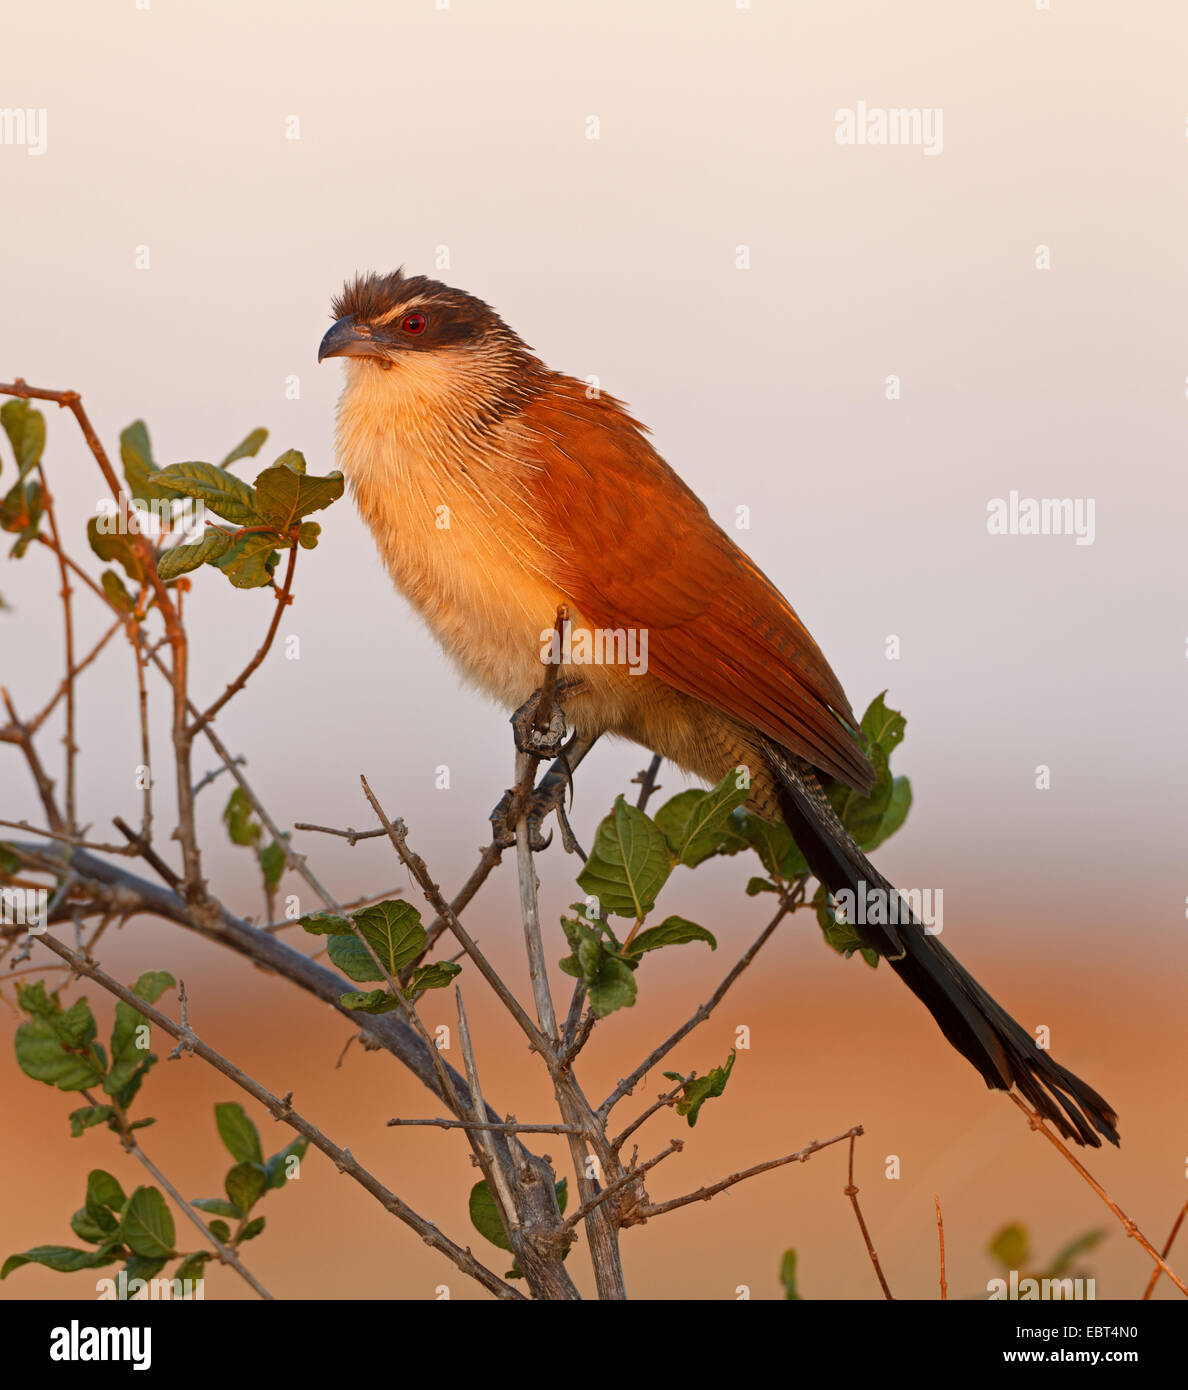 Burchells Coucal, White-browed coucal (Centropus superciliosus burchelli), sitting on a bush, South Africa, Krueger - Stock Image